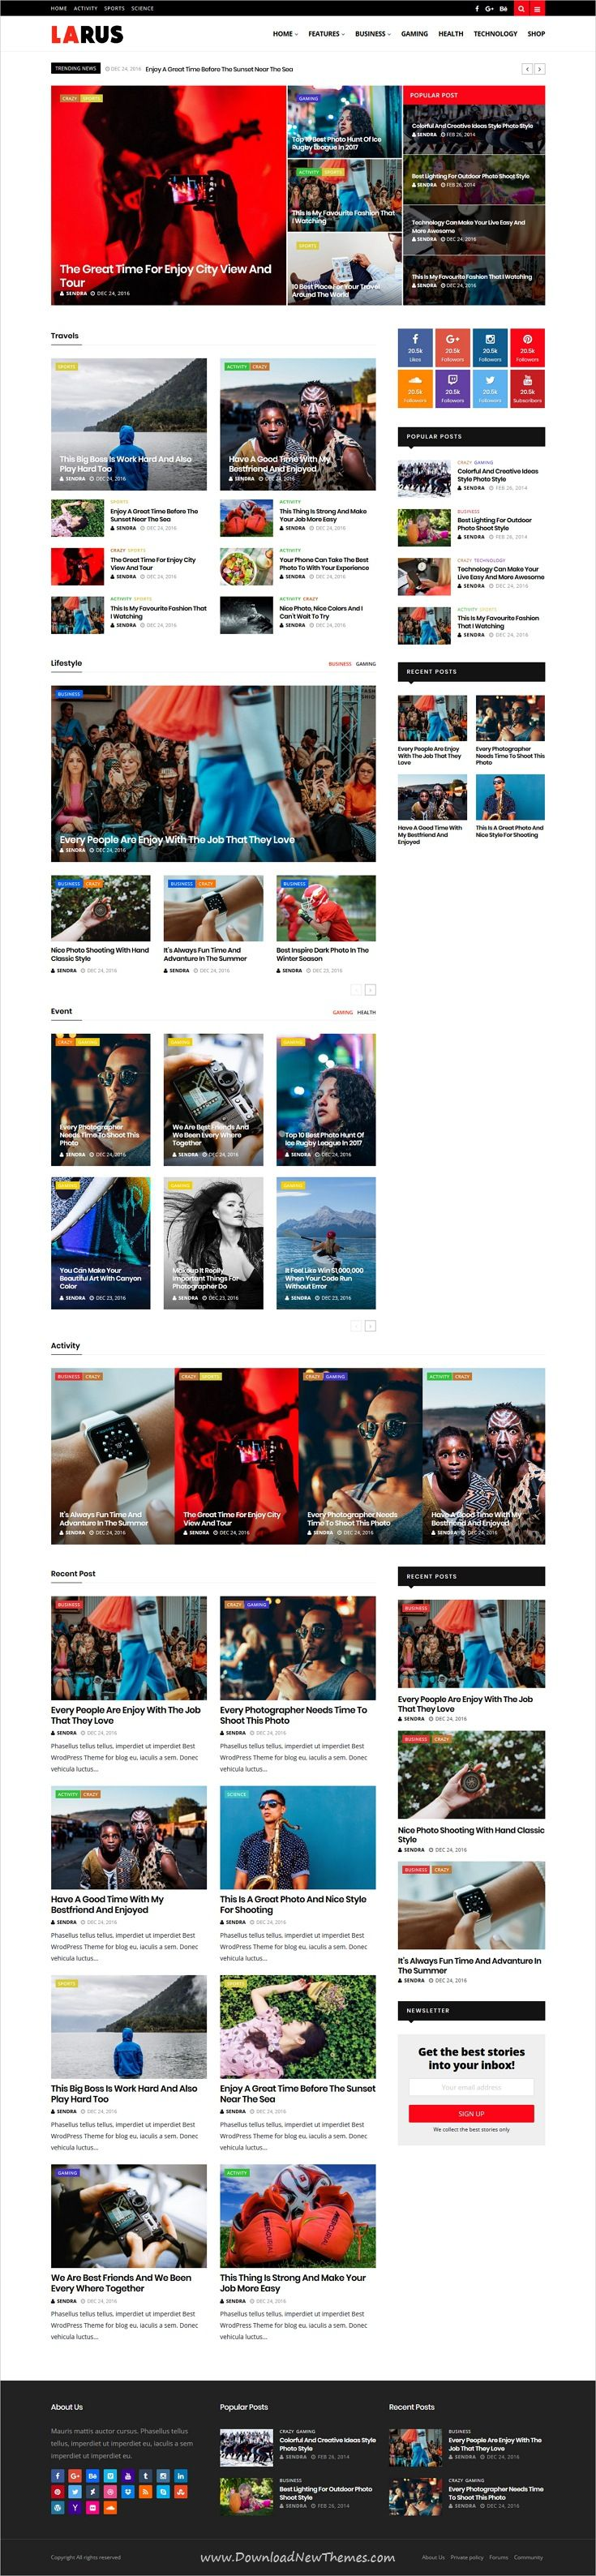 Larus is clean and modern design responsive #WordPress theme for #news, #blog and #magazine publishing #website with 13 unique homepage layouts to live preview & download click on image or Visit 👆